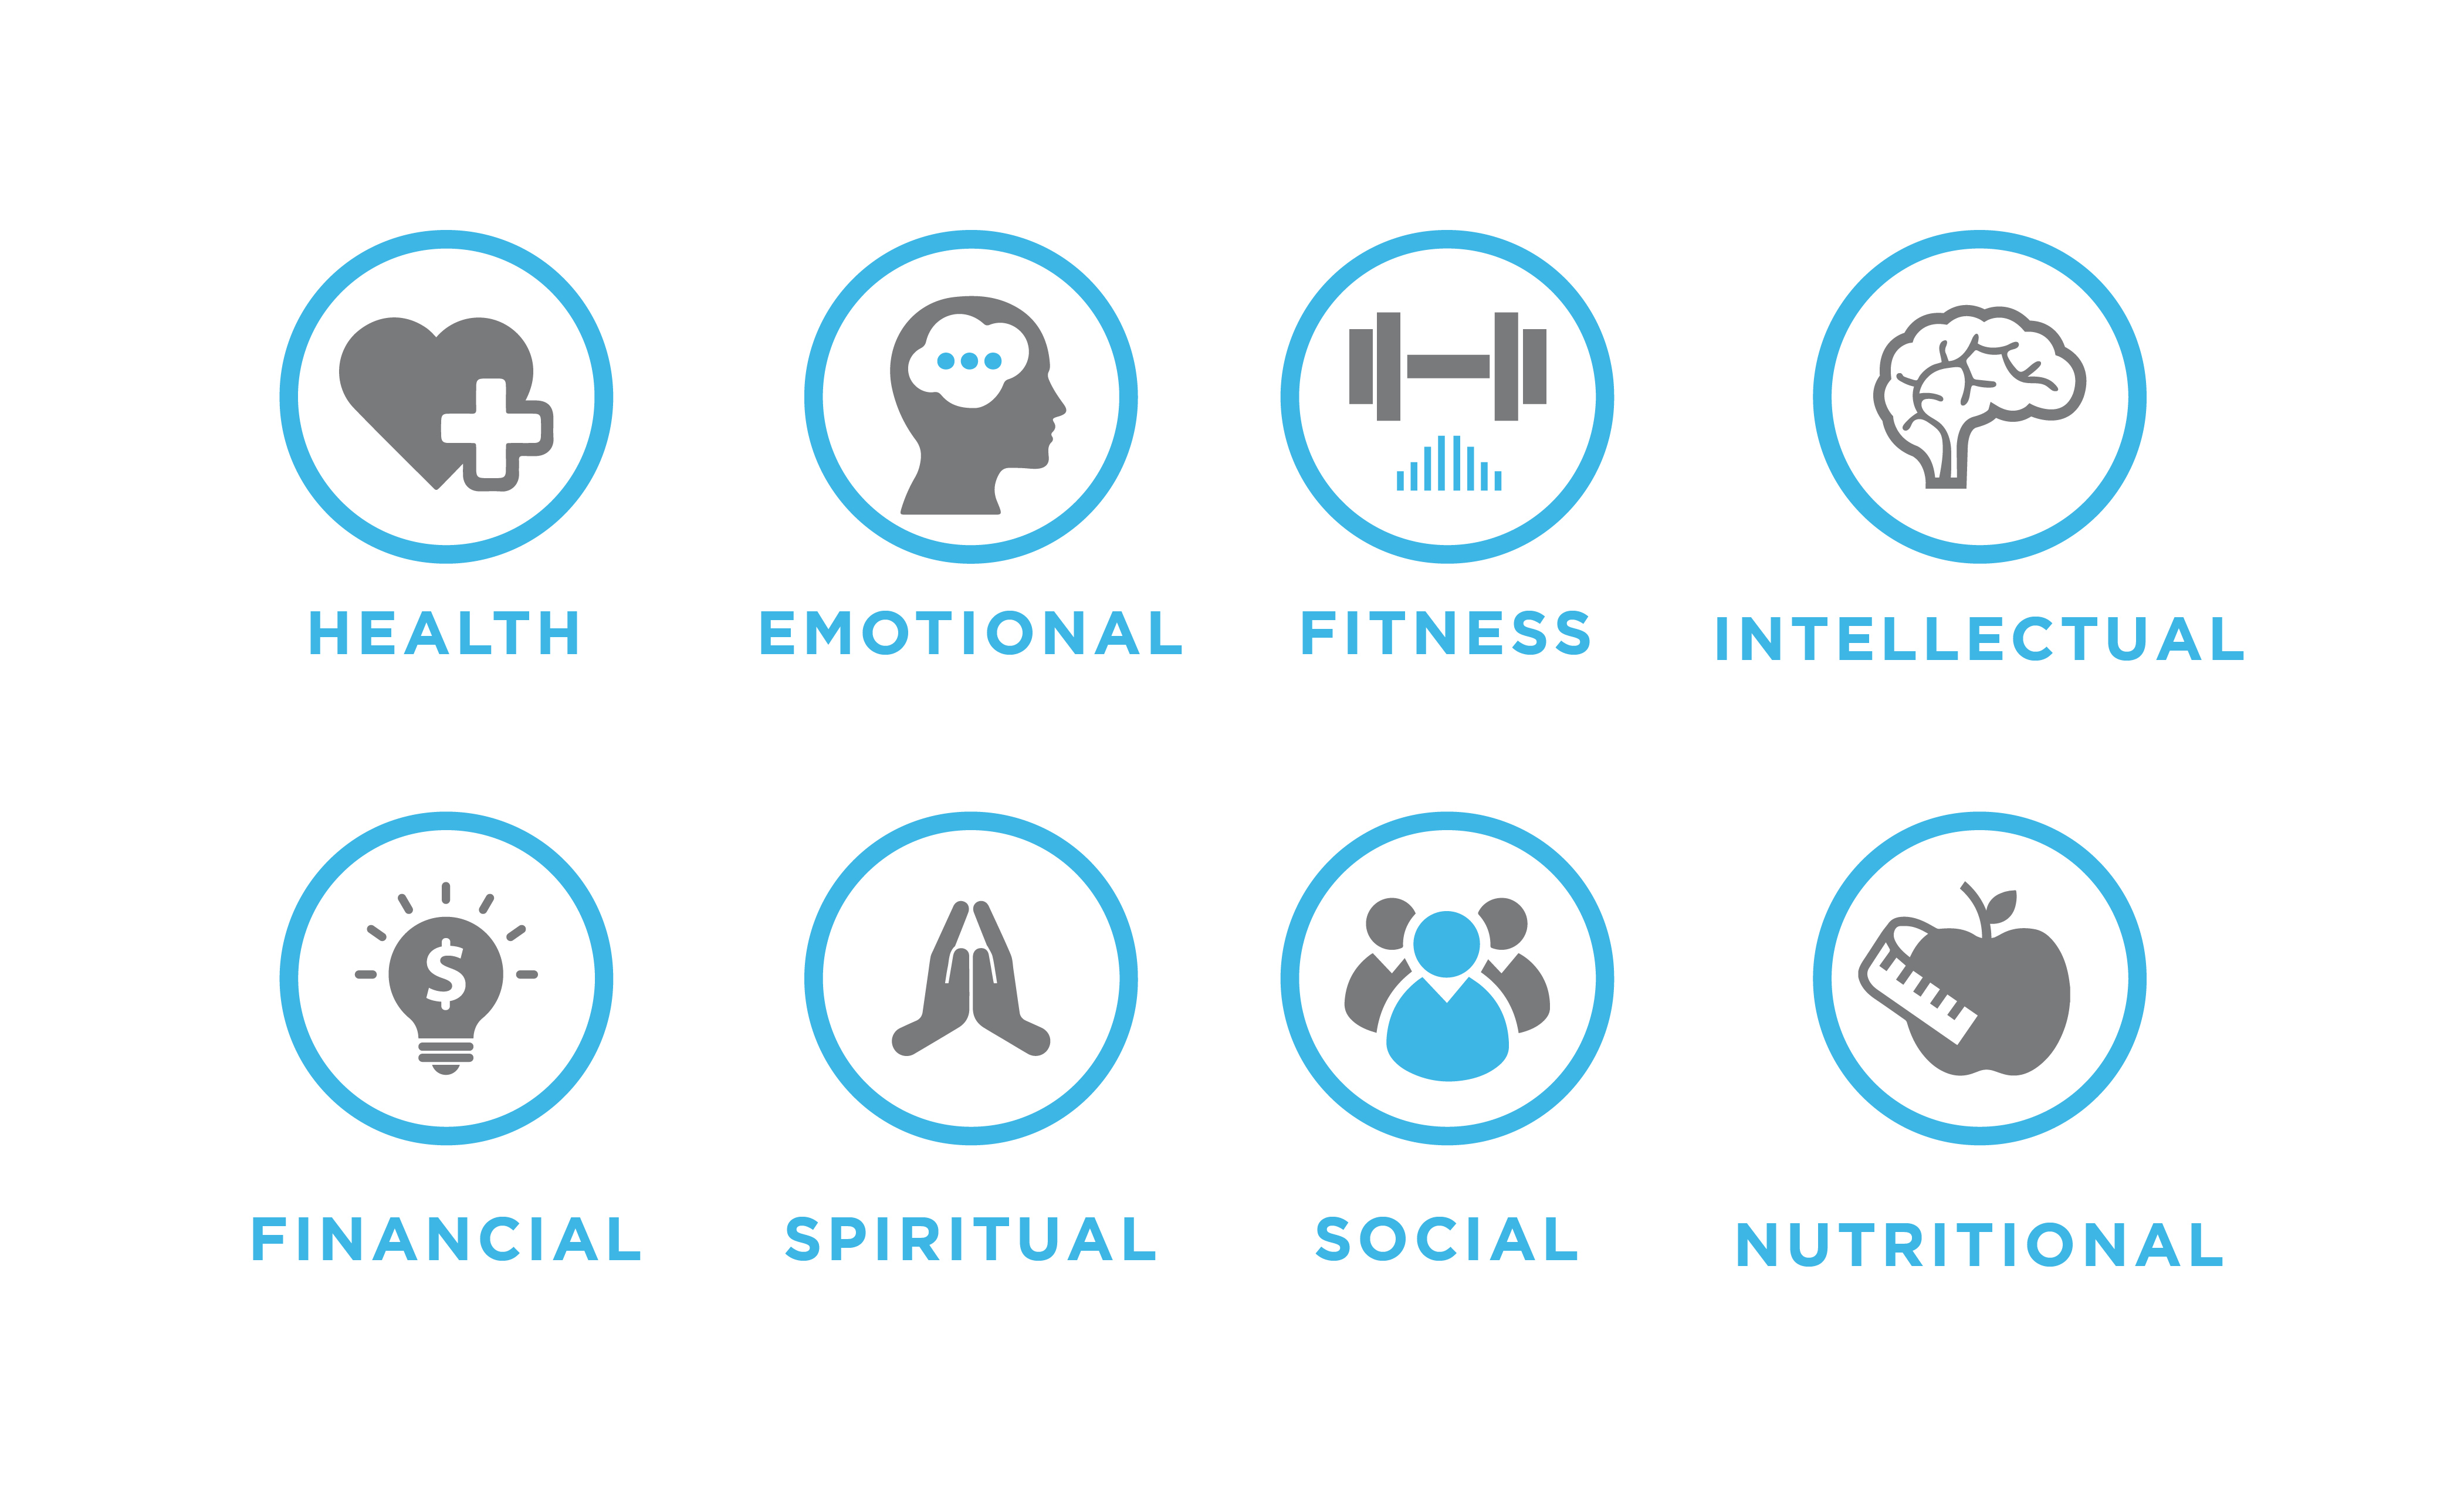 Image displaying the eight categories of wellness